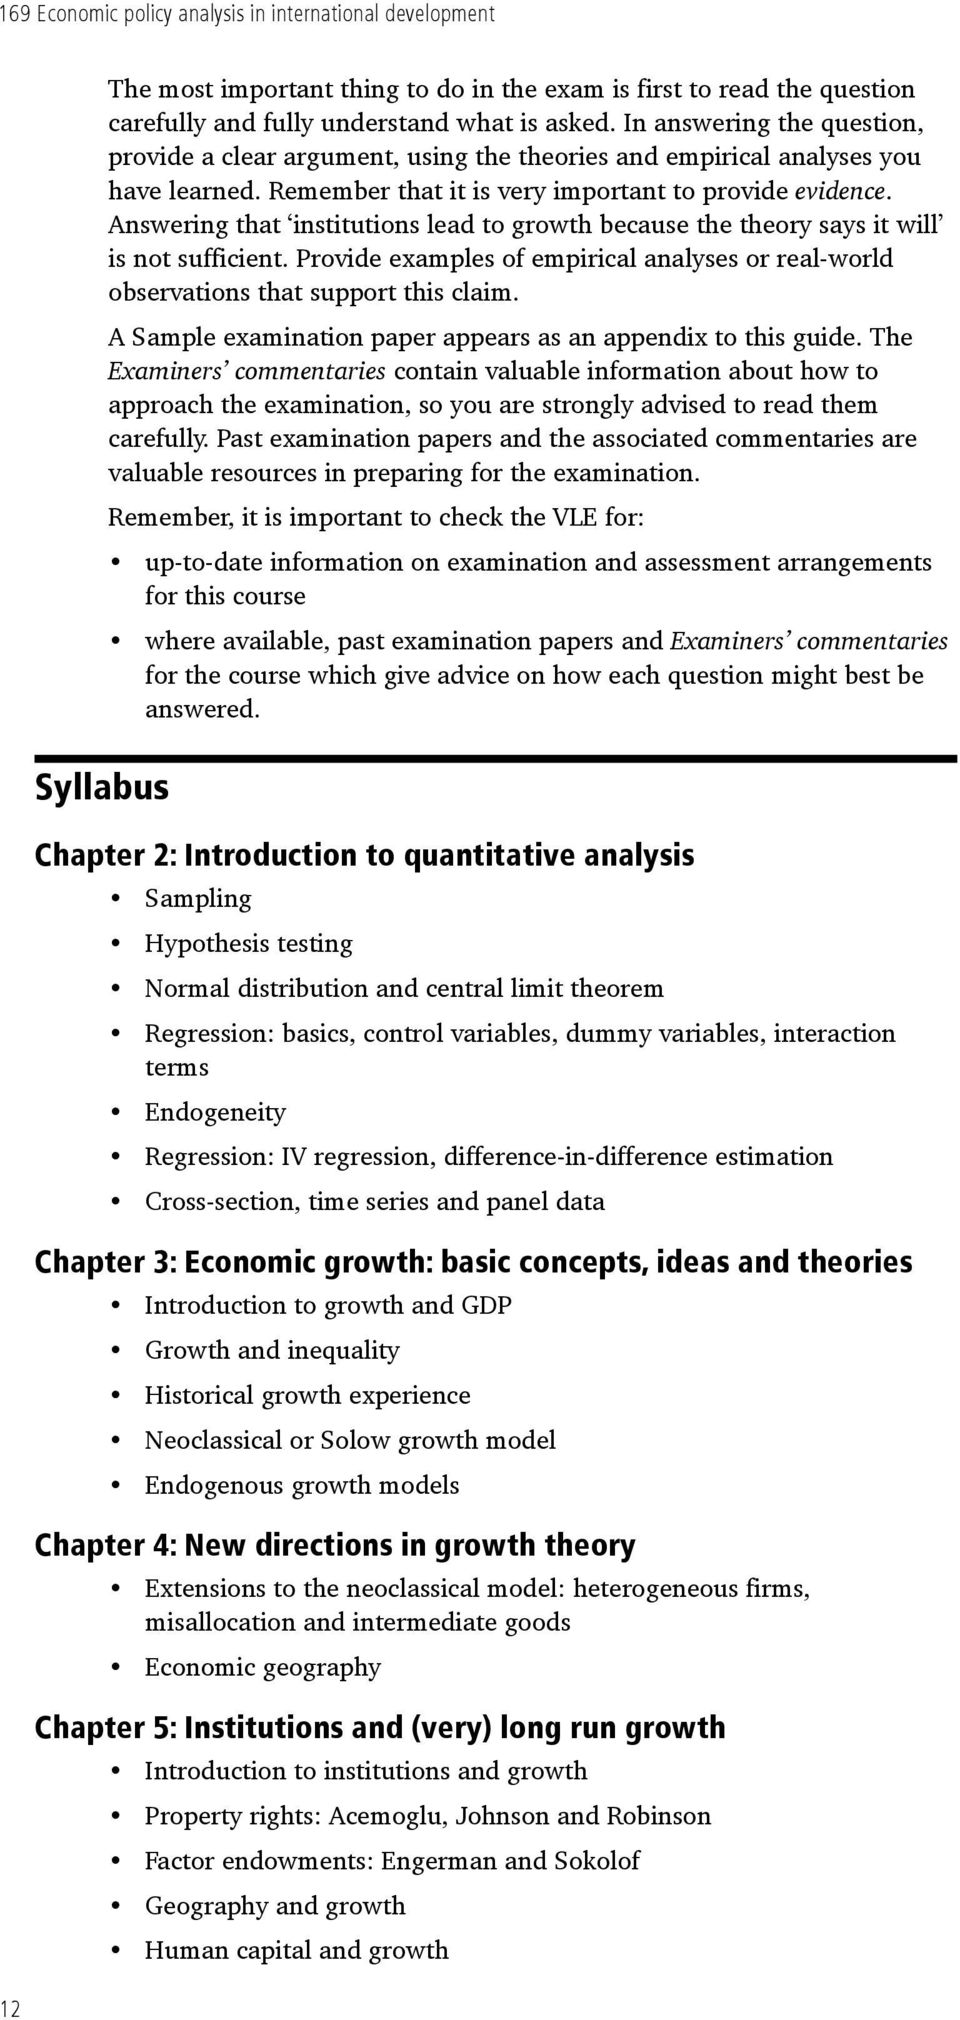 real analysis with economic applications pdf